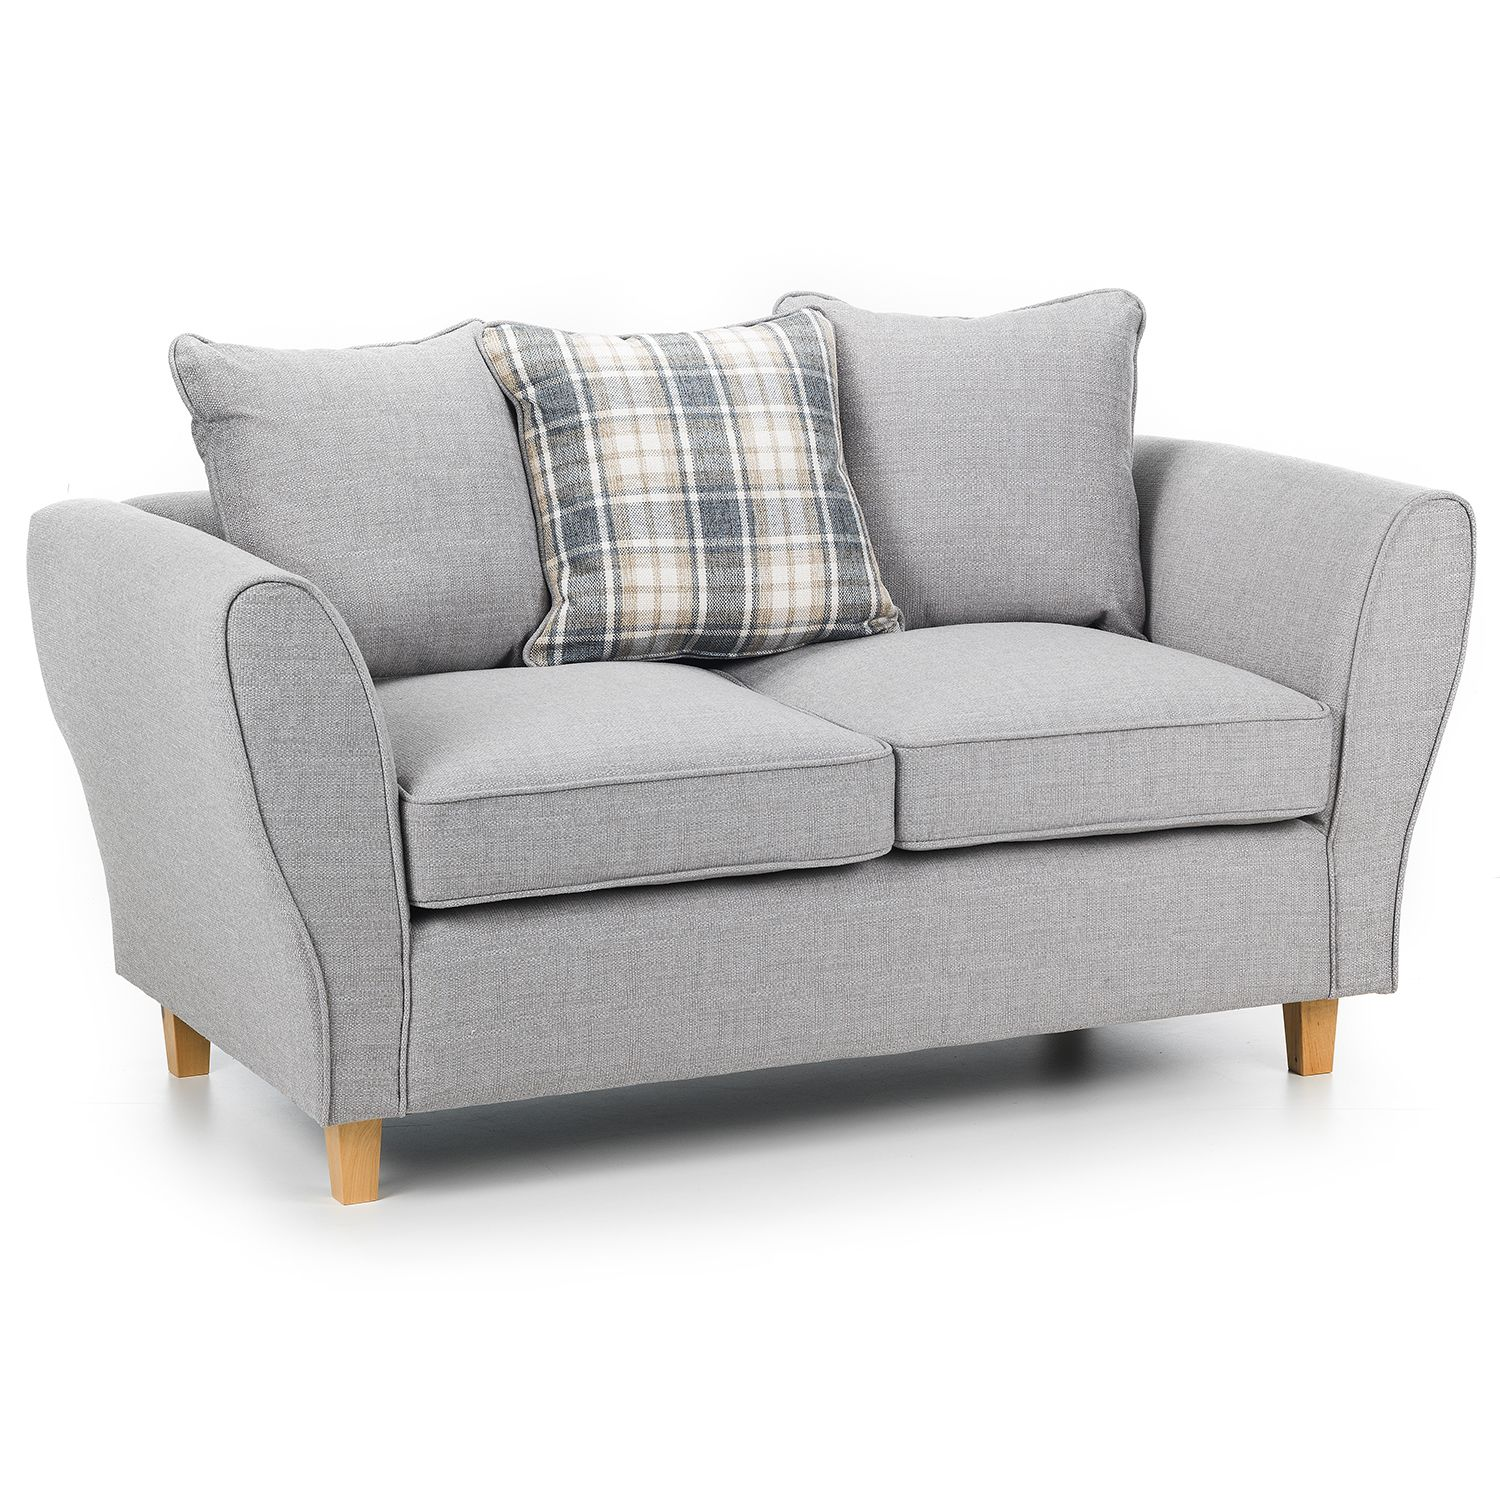 Ashbourne Fabric 2 Seater Sofa Next Day Delivery